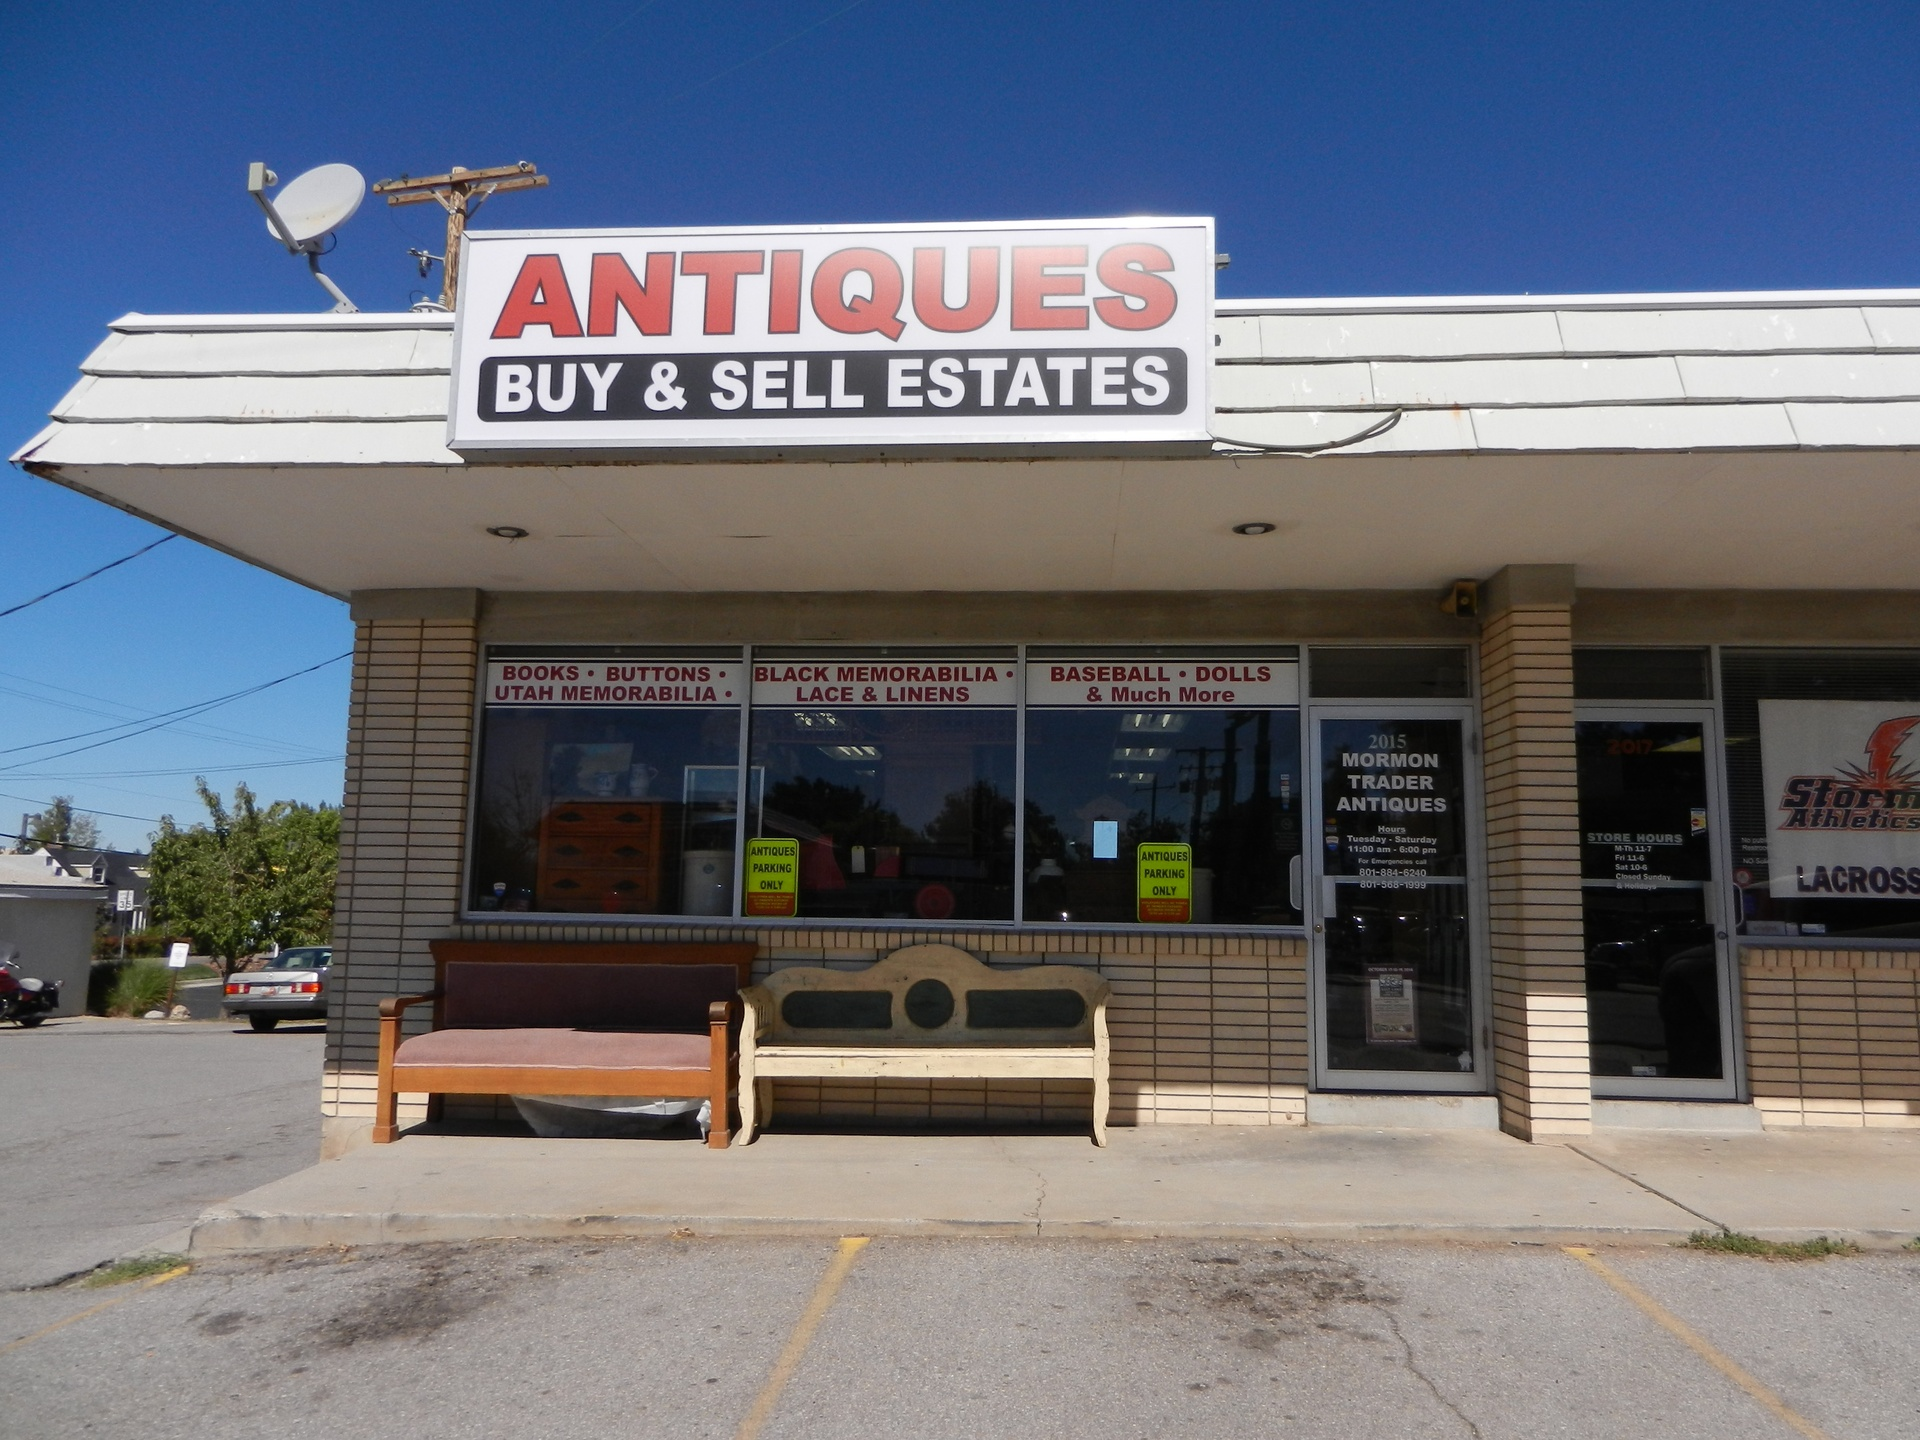 Mormon Trader Antiques, 2015 East 3300 South, Salt Lake City, Utah, 84109, USA